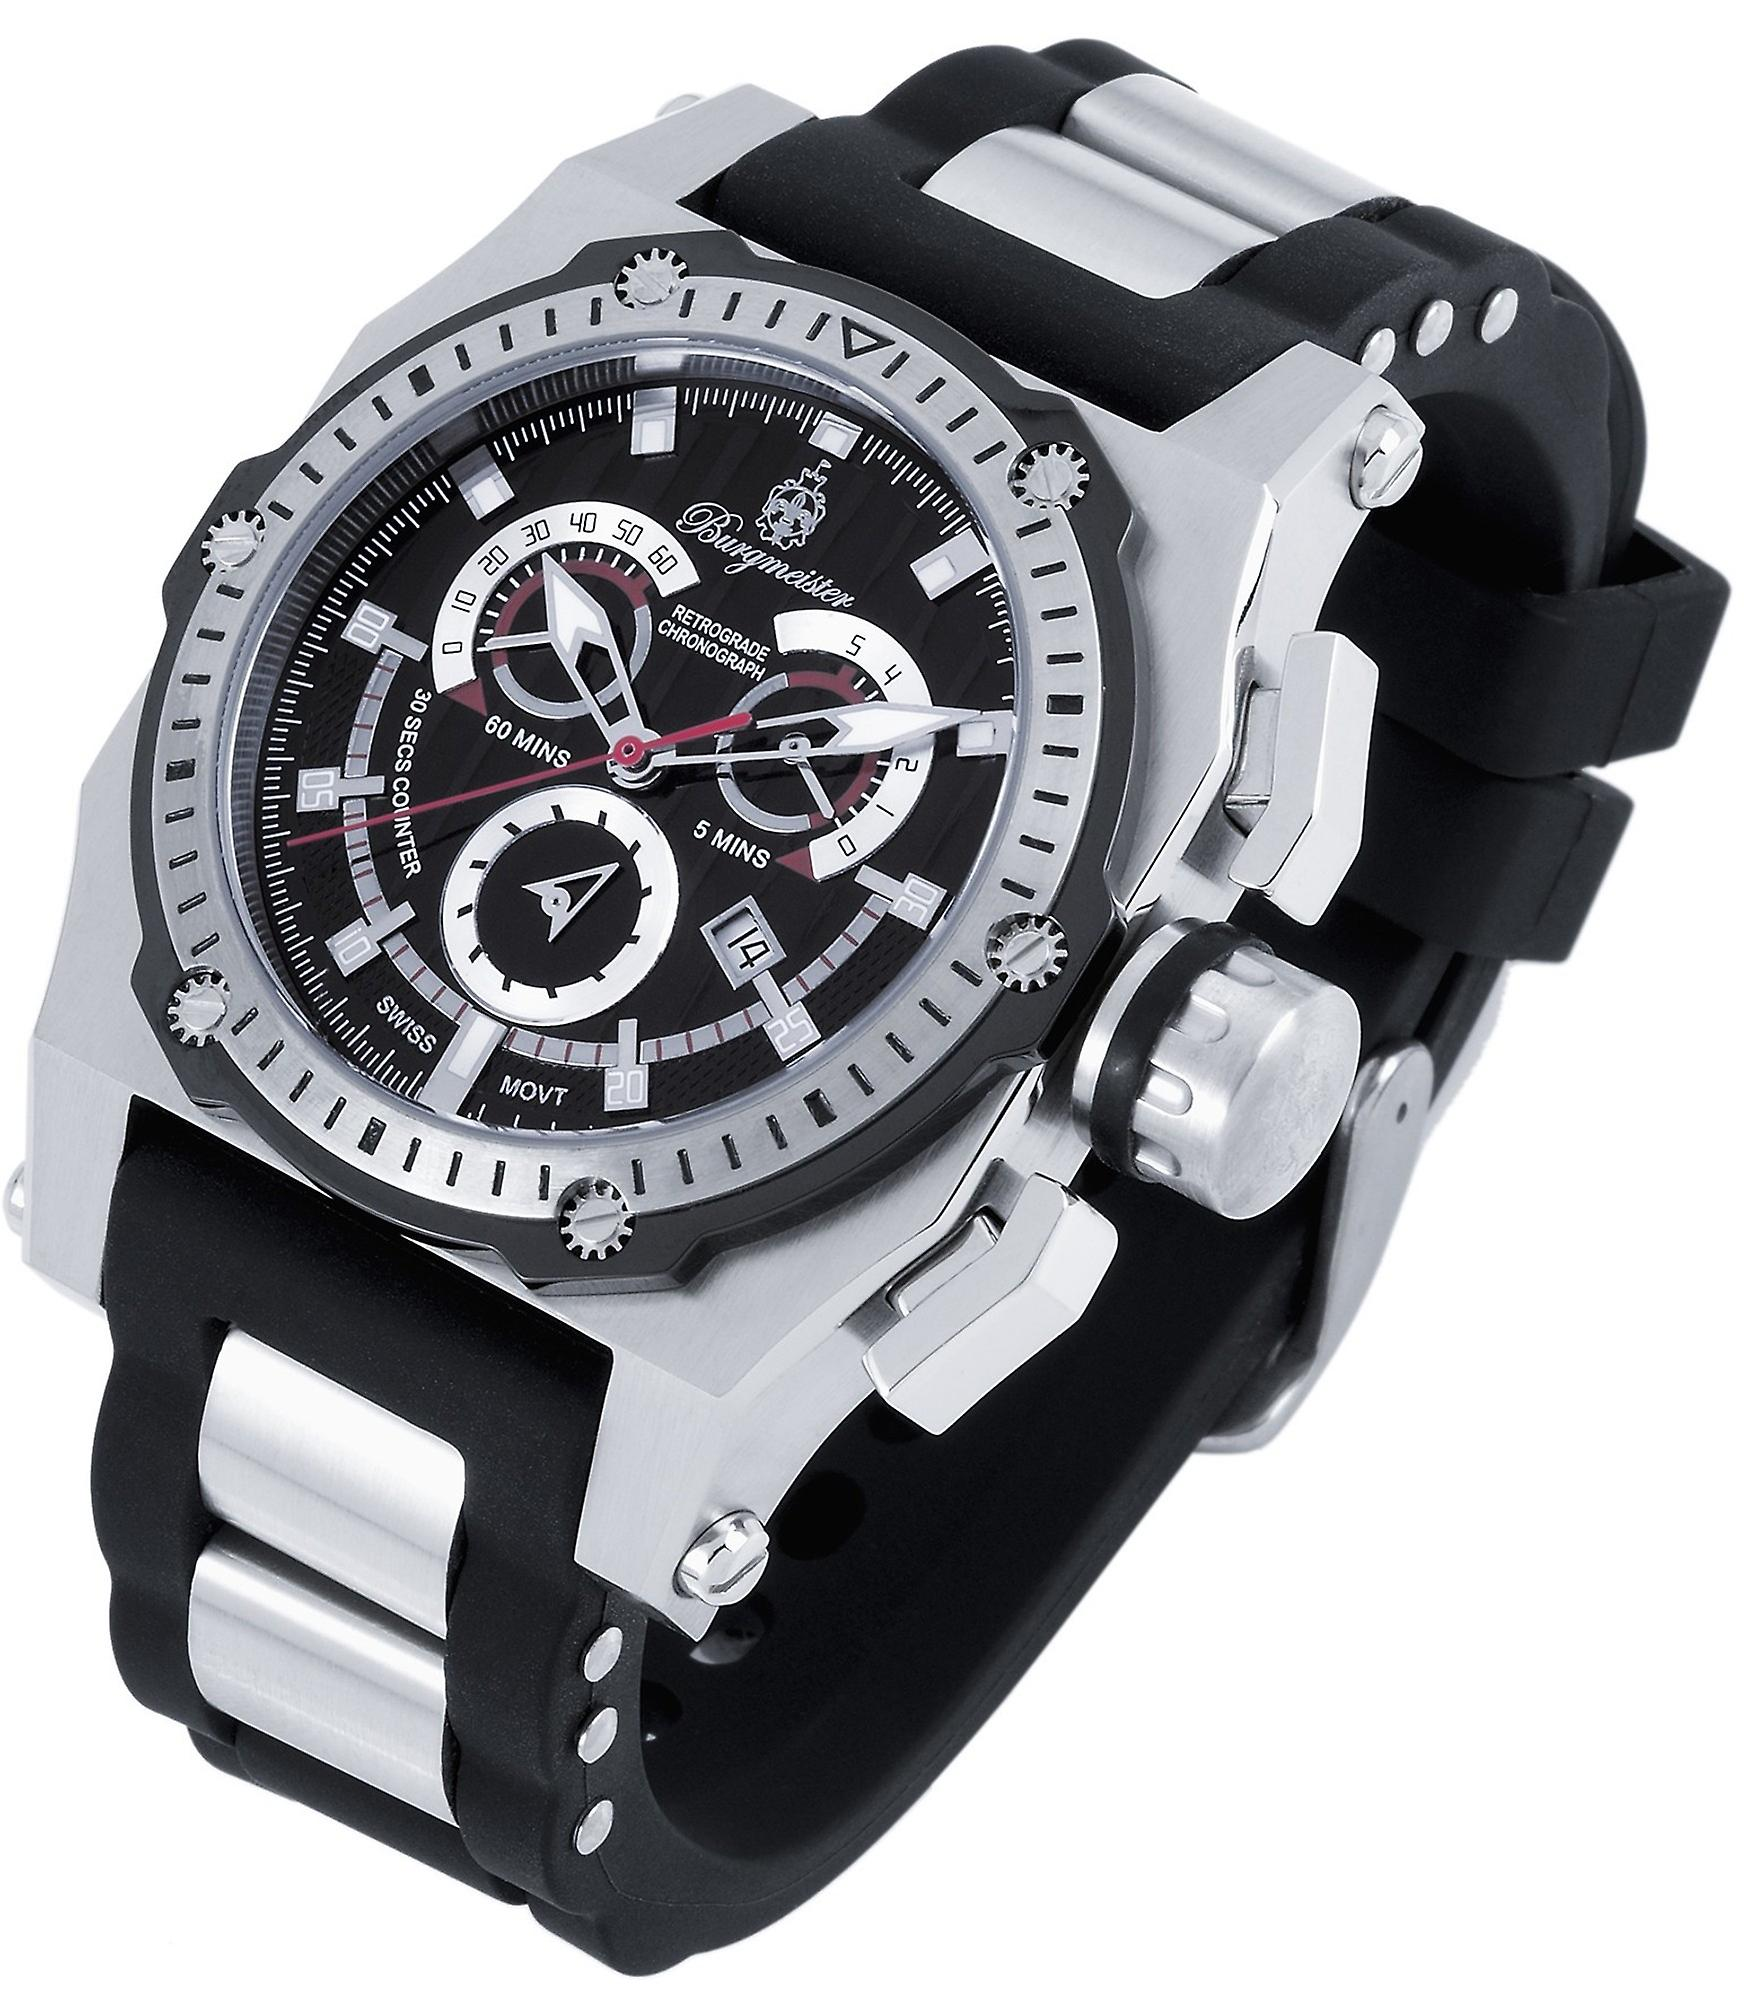 Burgmeister Gents Chronograph London BM157-121